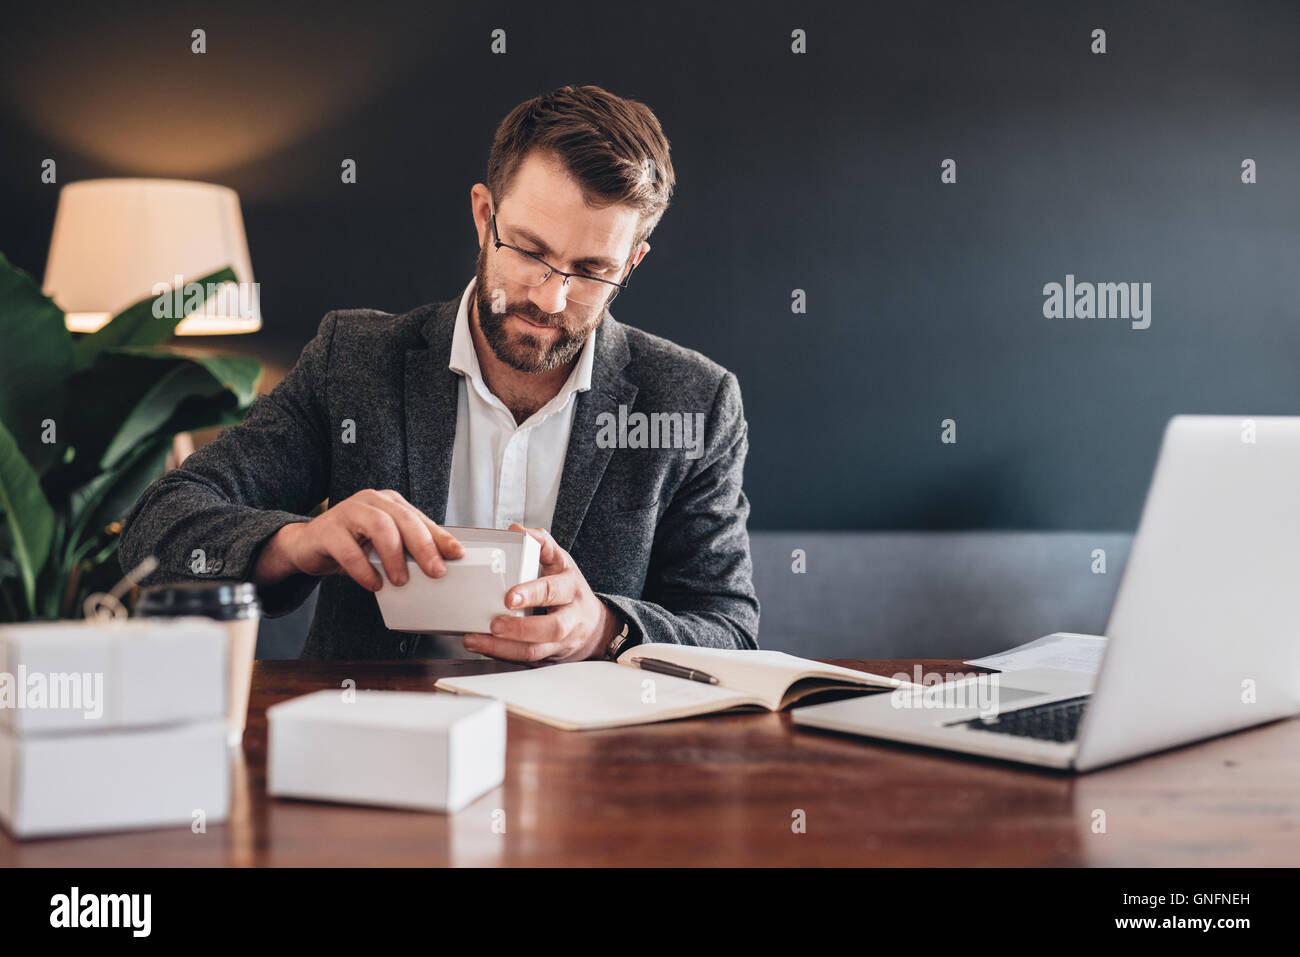 Even small items need special care - Stock Image